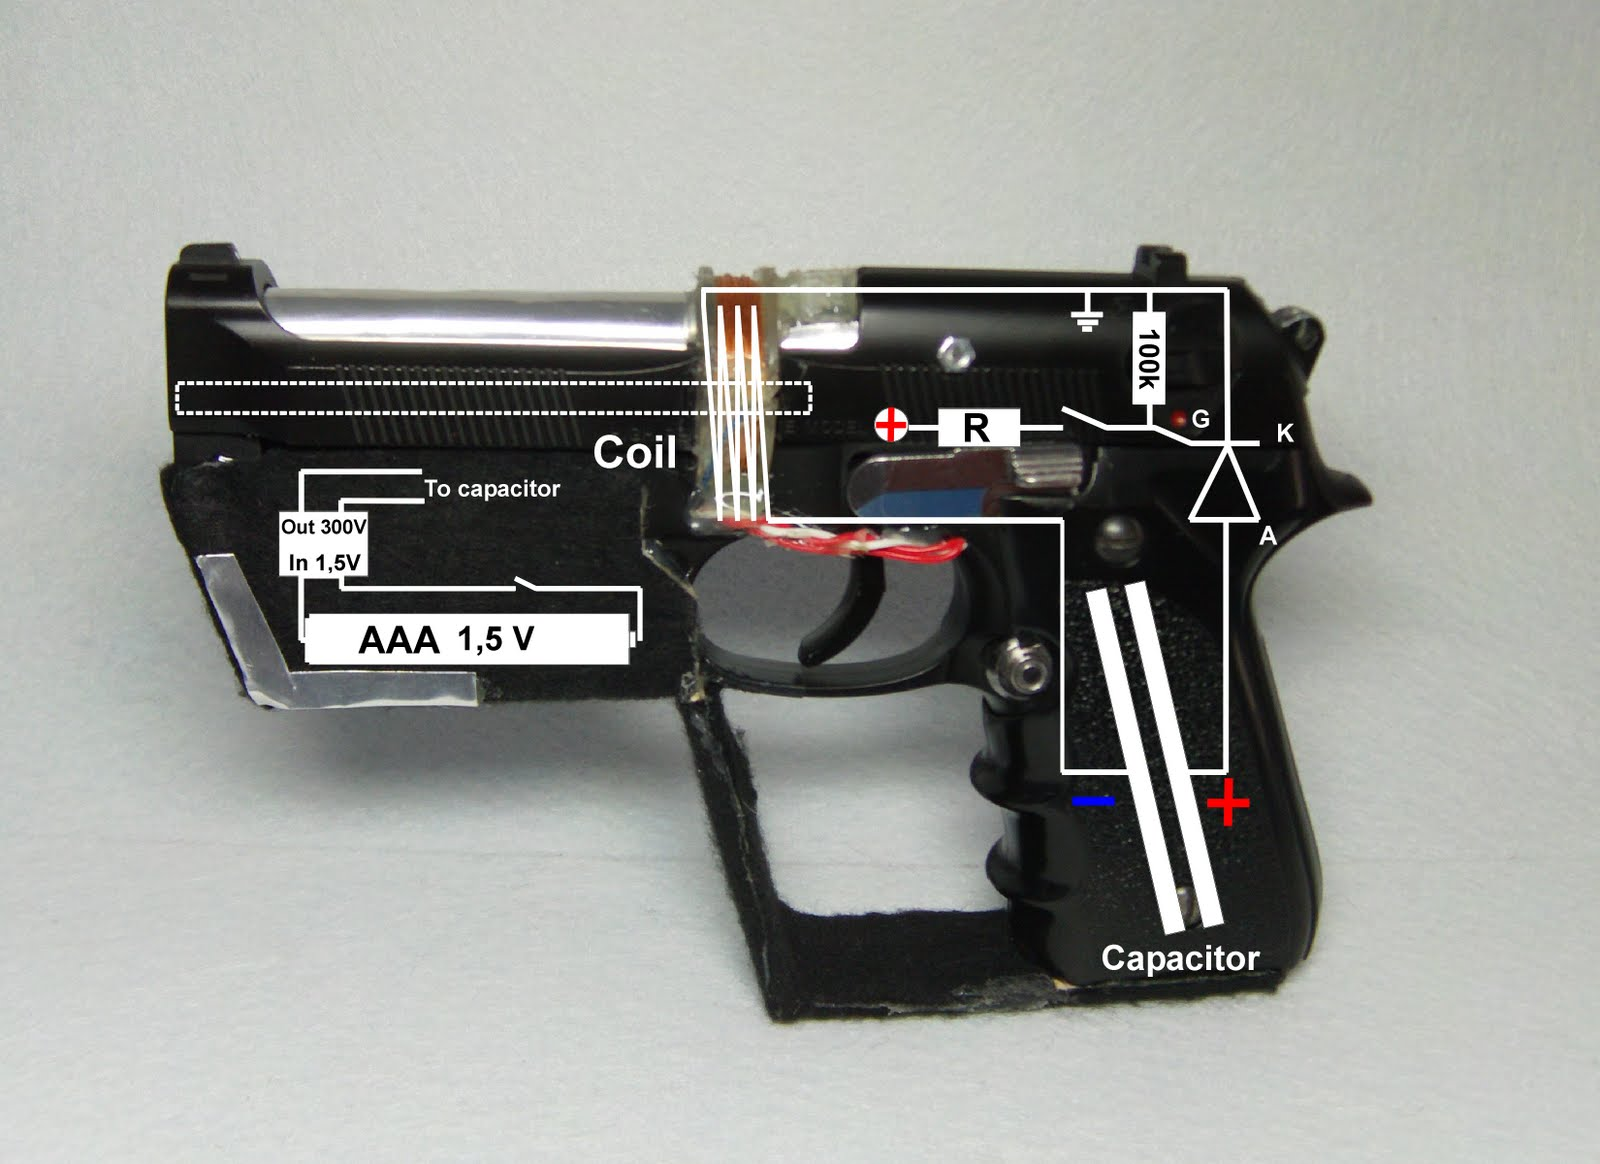 how to put silicone into gun